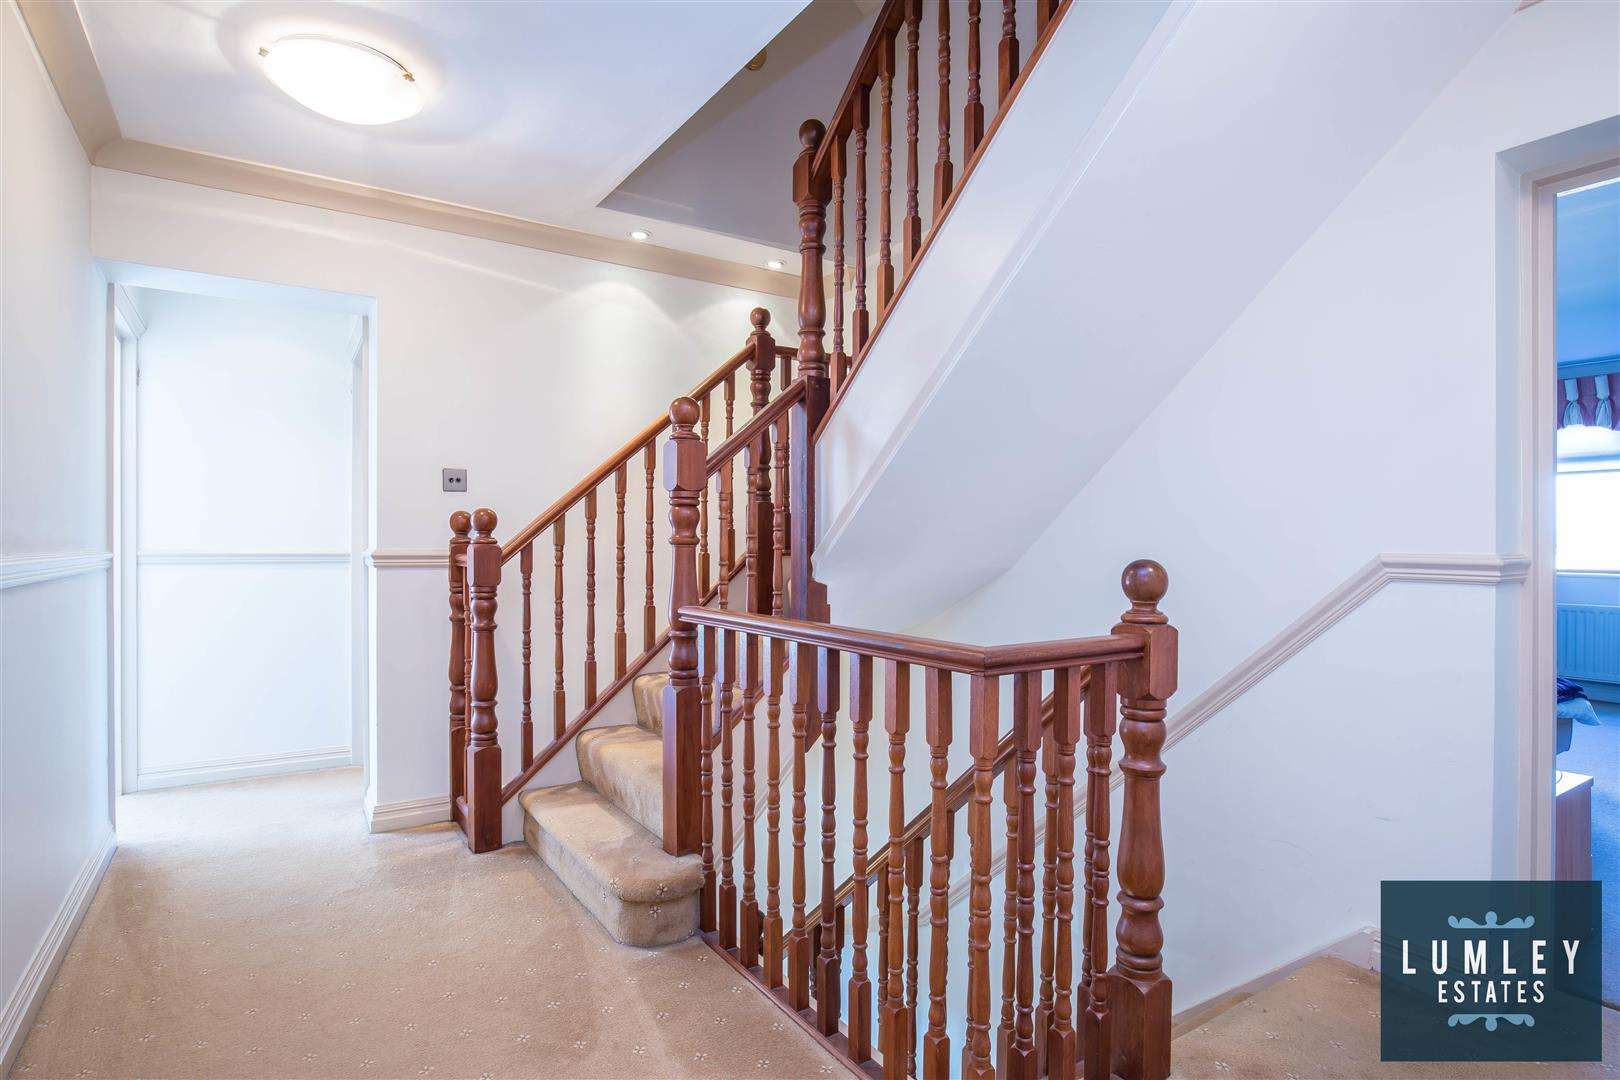 6 bed to rent - (Property Image 12)